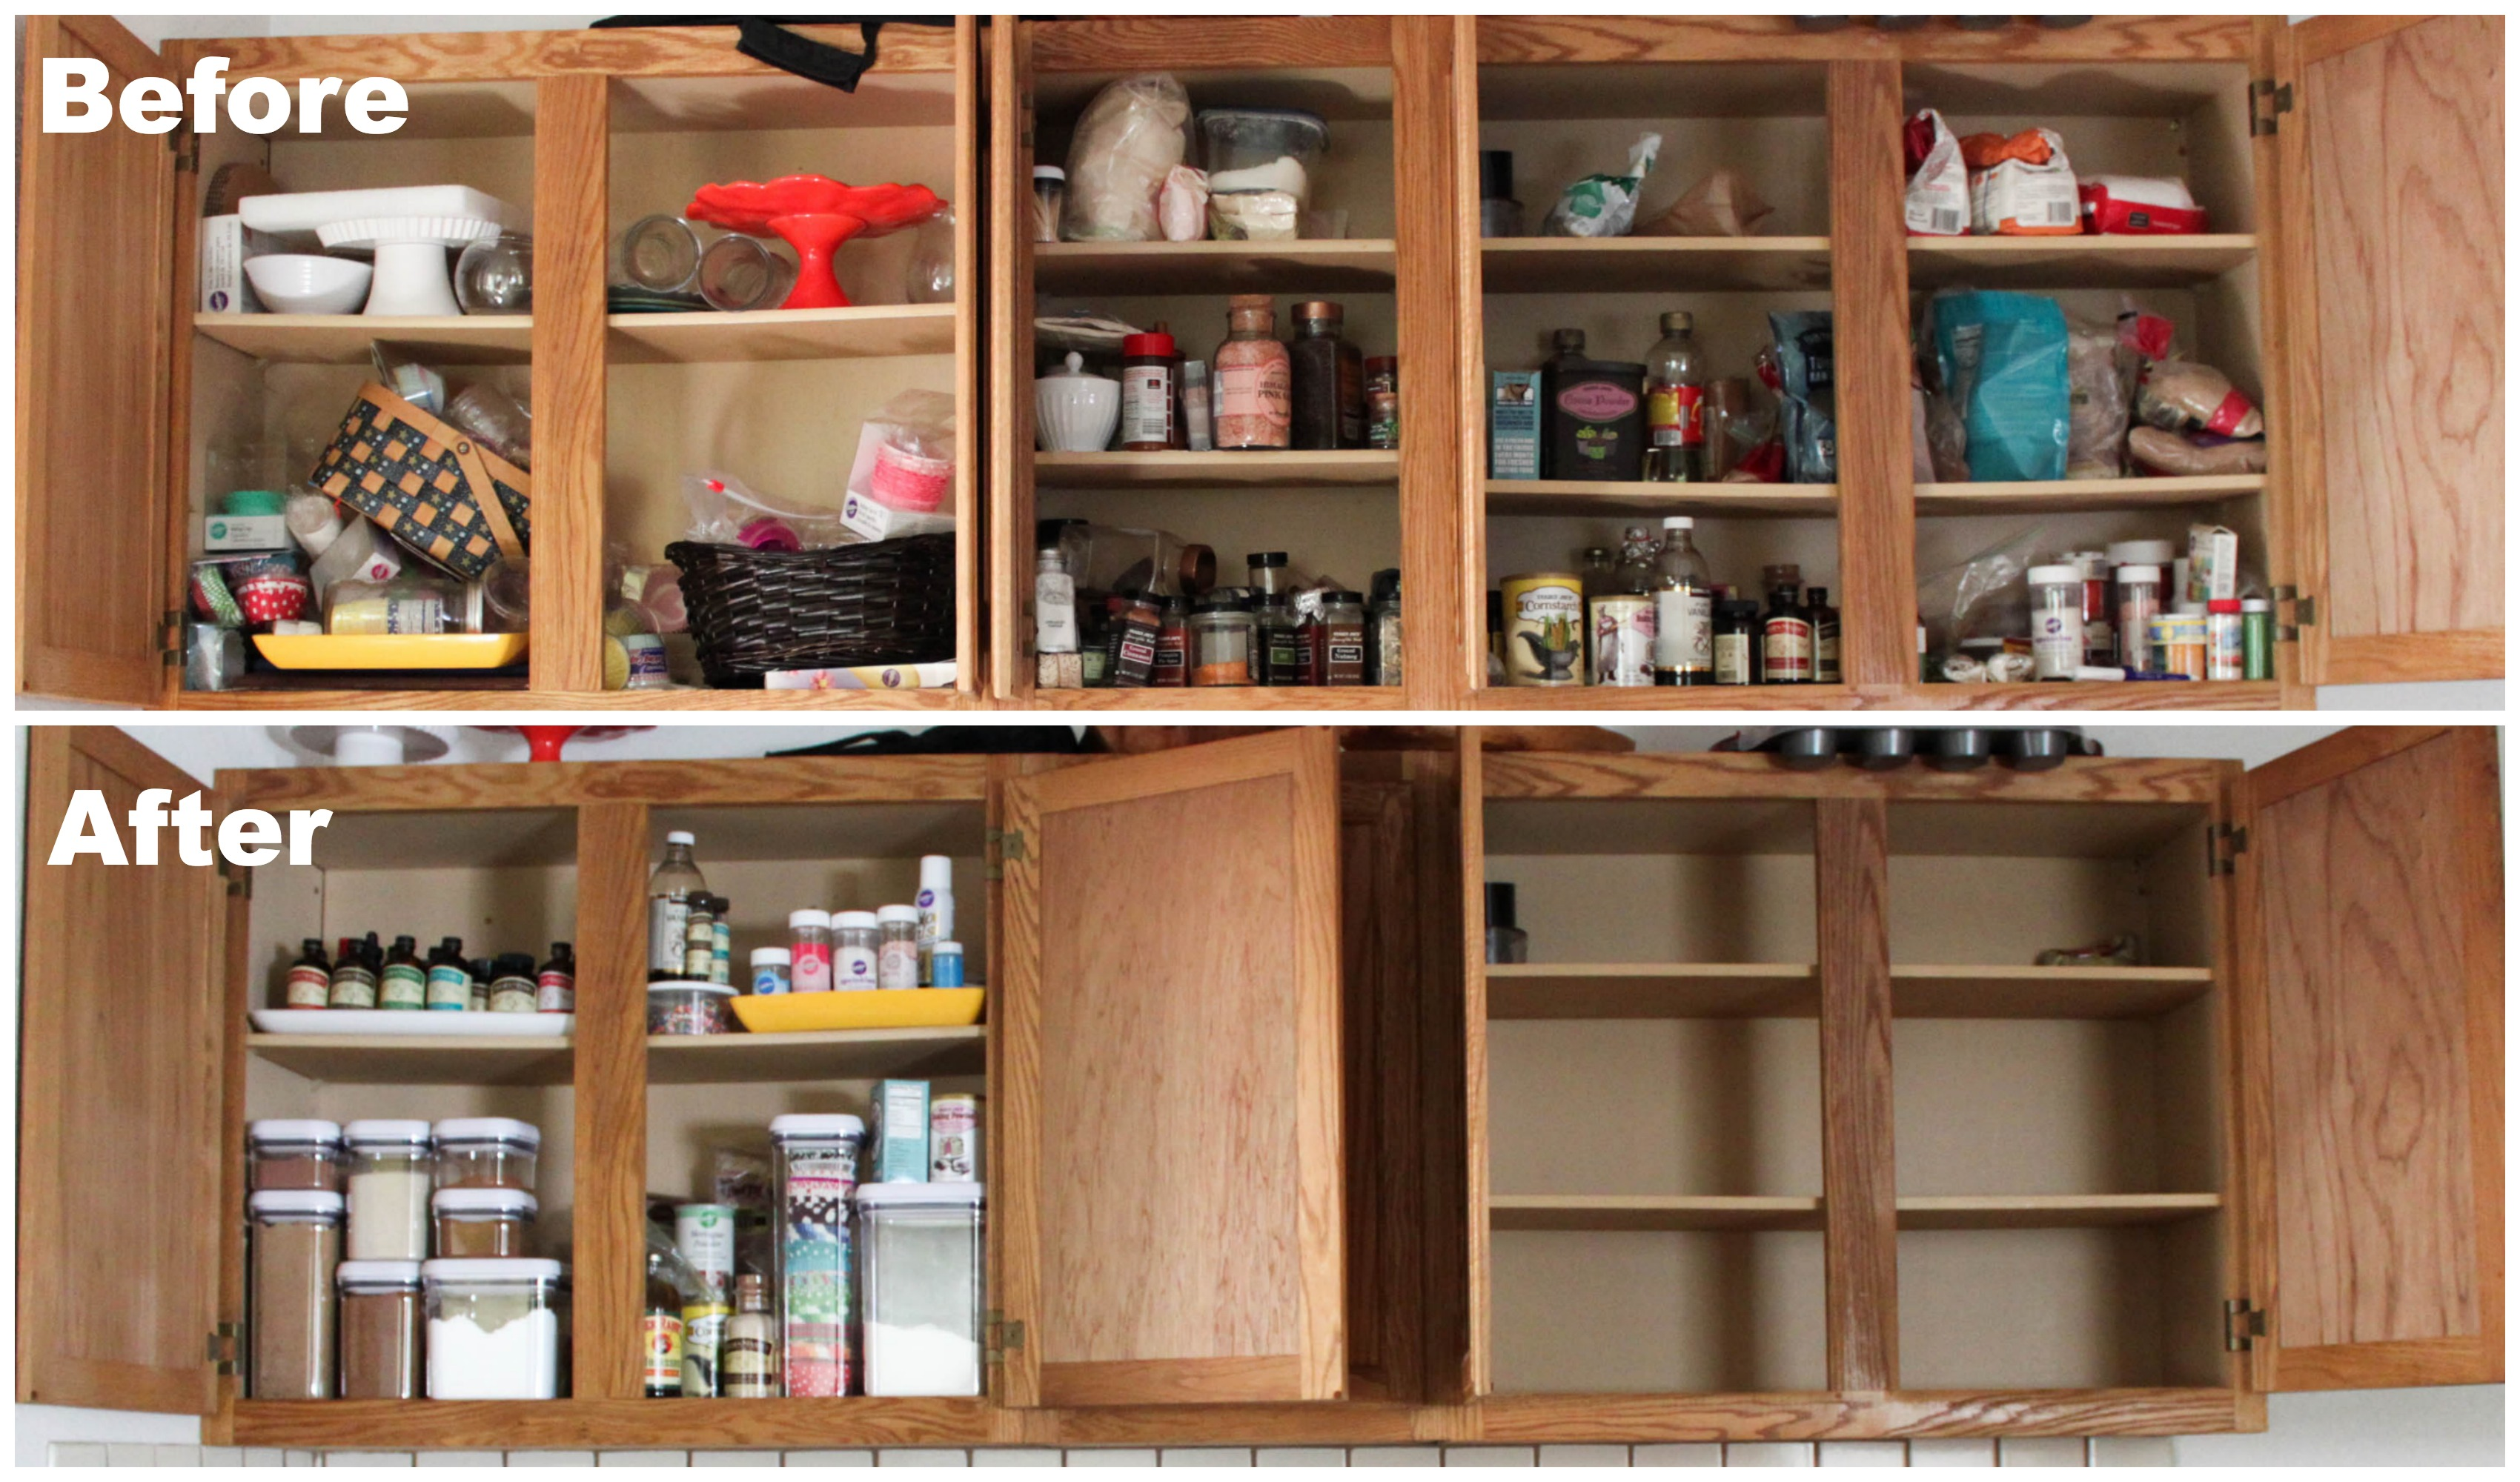 Genial Before And After   Get 5 Easy Tips To Organize Your Baking Supplies